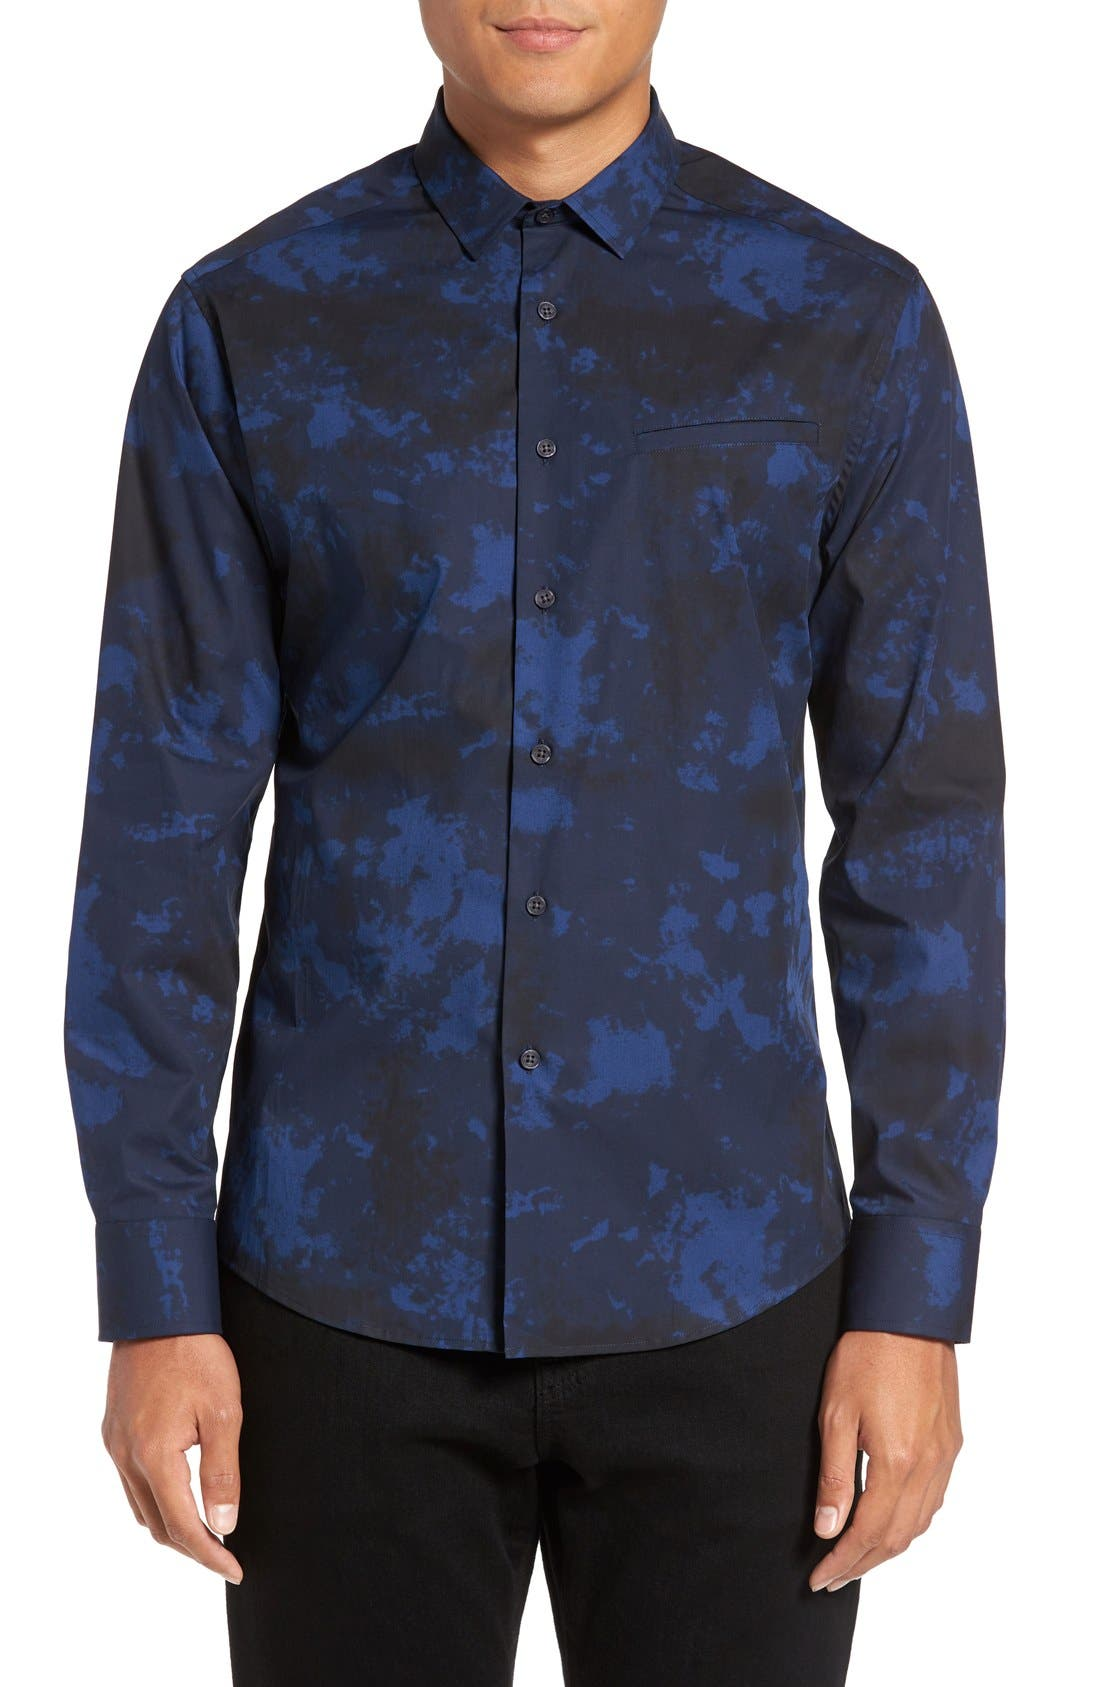 Slim Fit Sport Shirt,                         Main,                         color, Navy/ Black Dyed Print